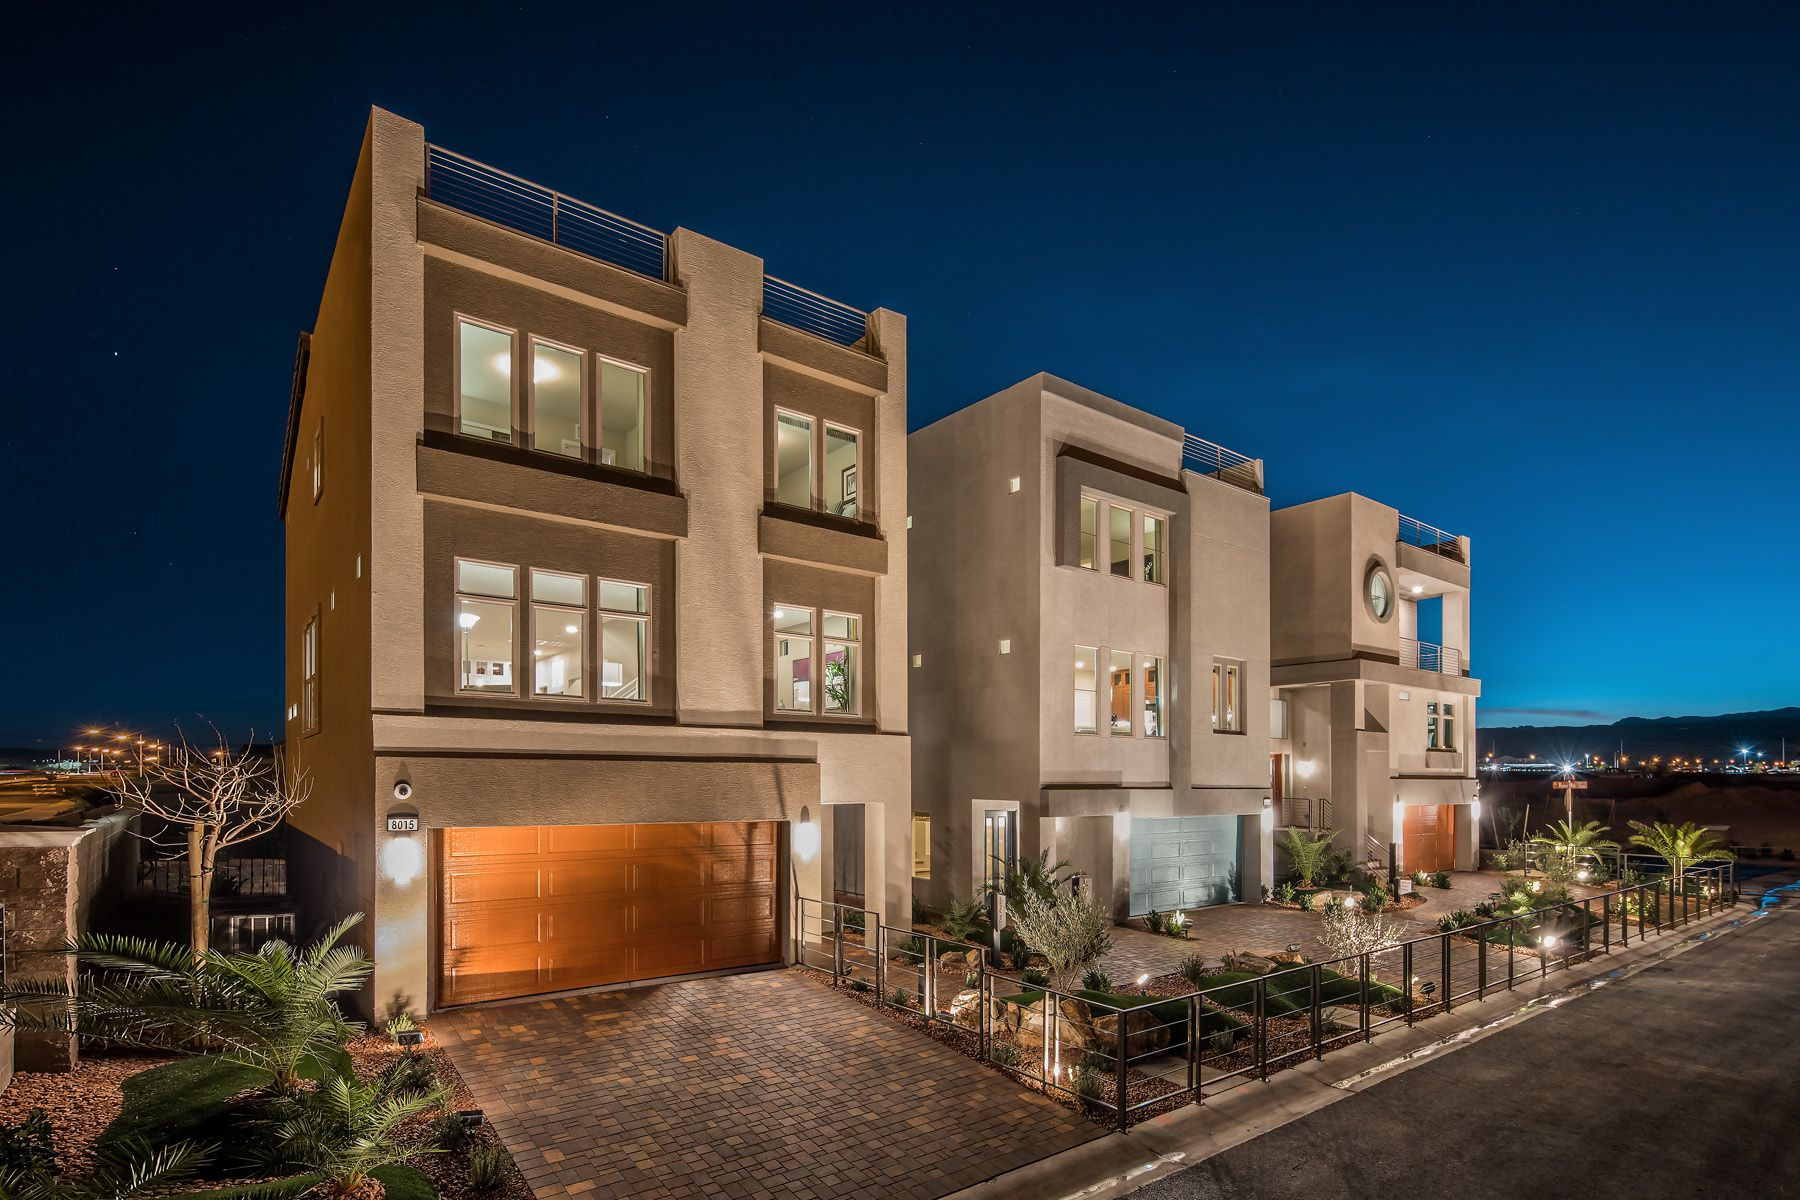 Homes For Sale In Southwest Las Vegas Skyview Terrace Located In Southwest Las Vegas Is An Innovative